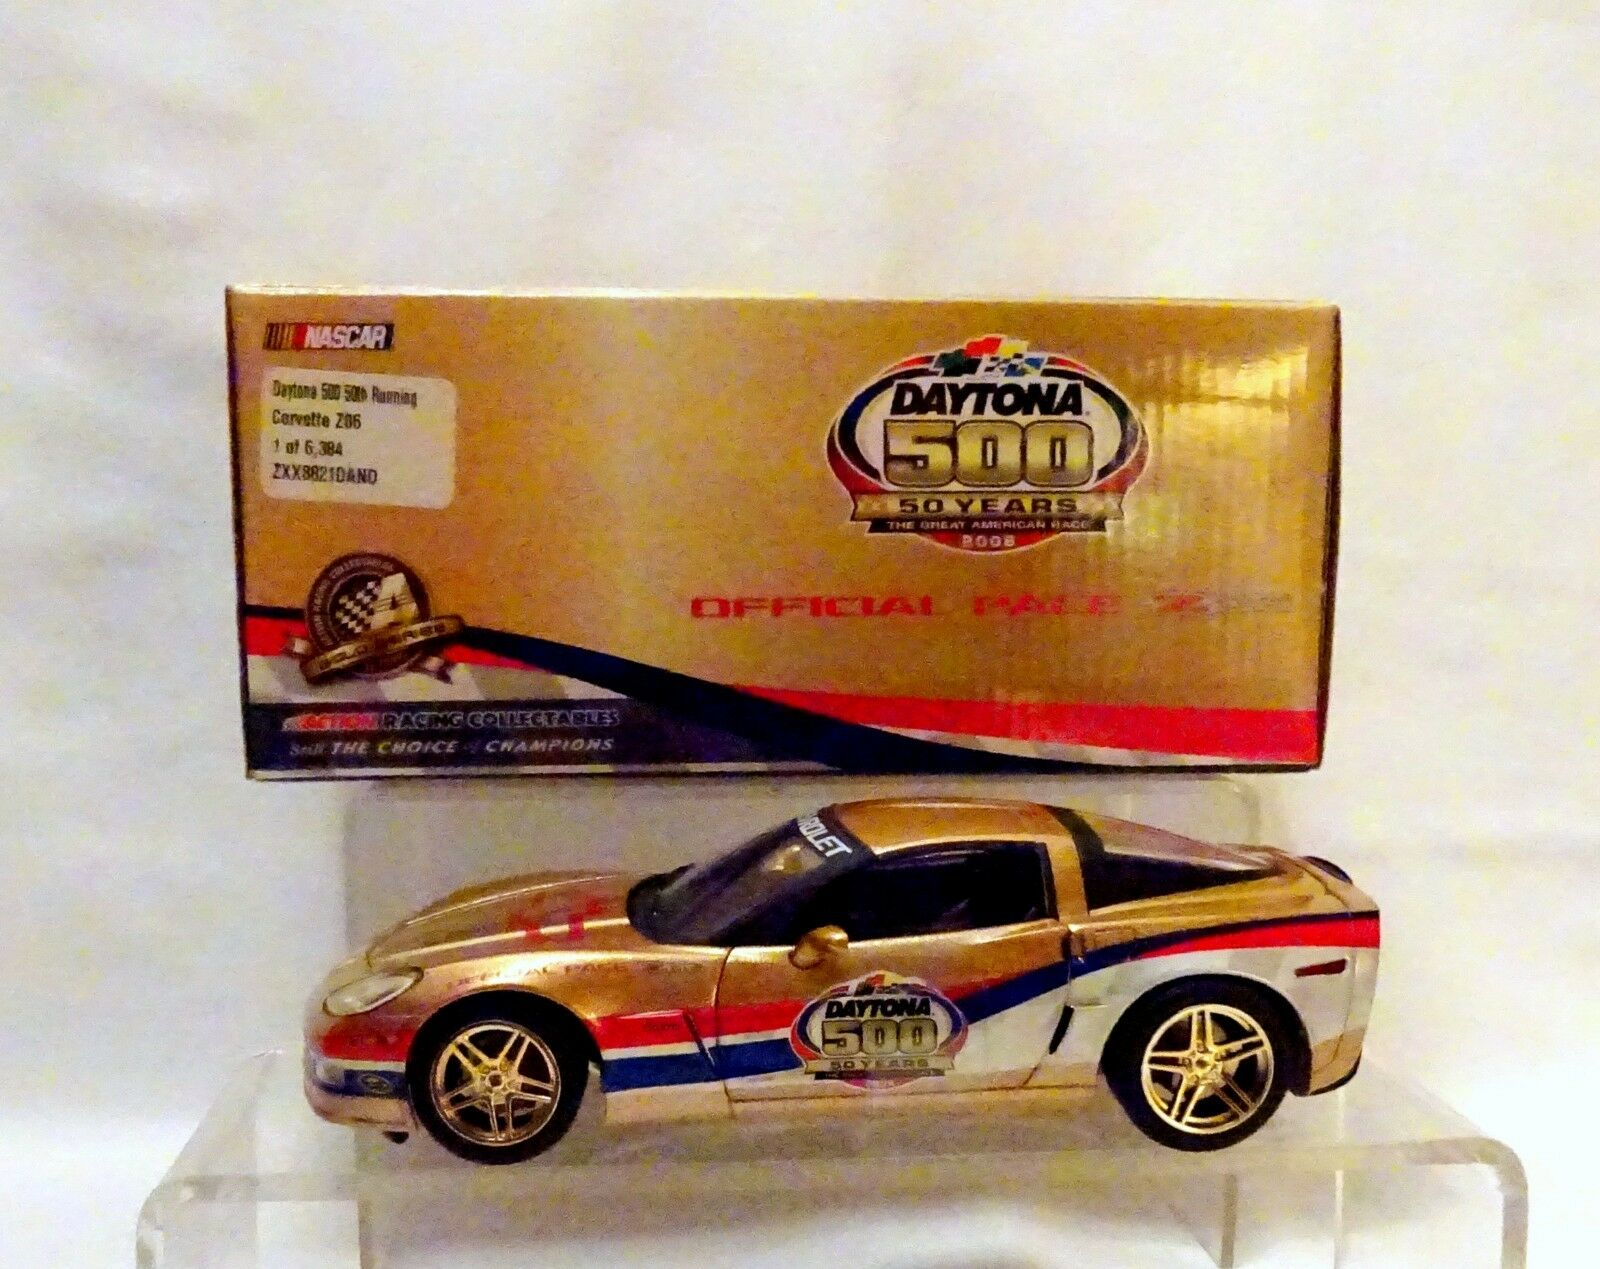 2008 Corvette Z06 Daytona 500 Pace Car 50 Years  1 24 Greenlight......(56)